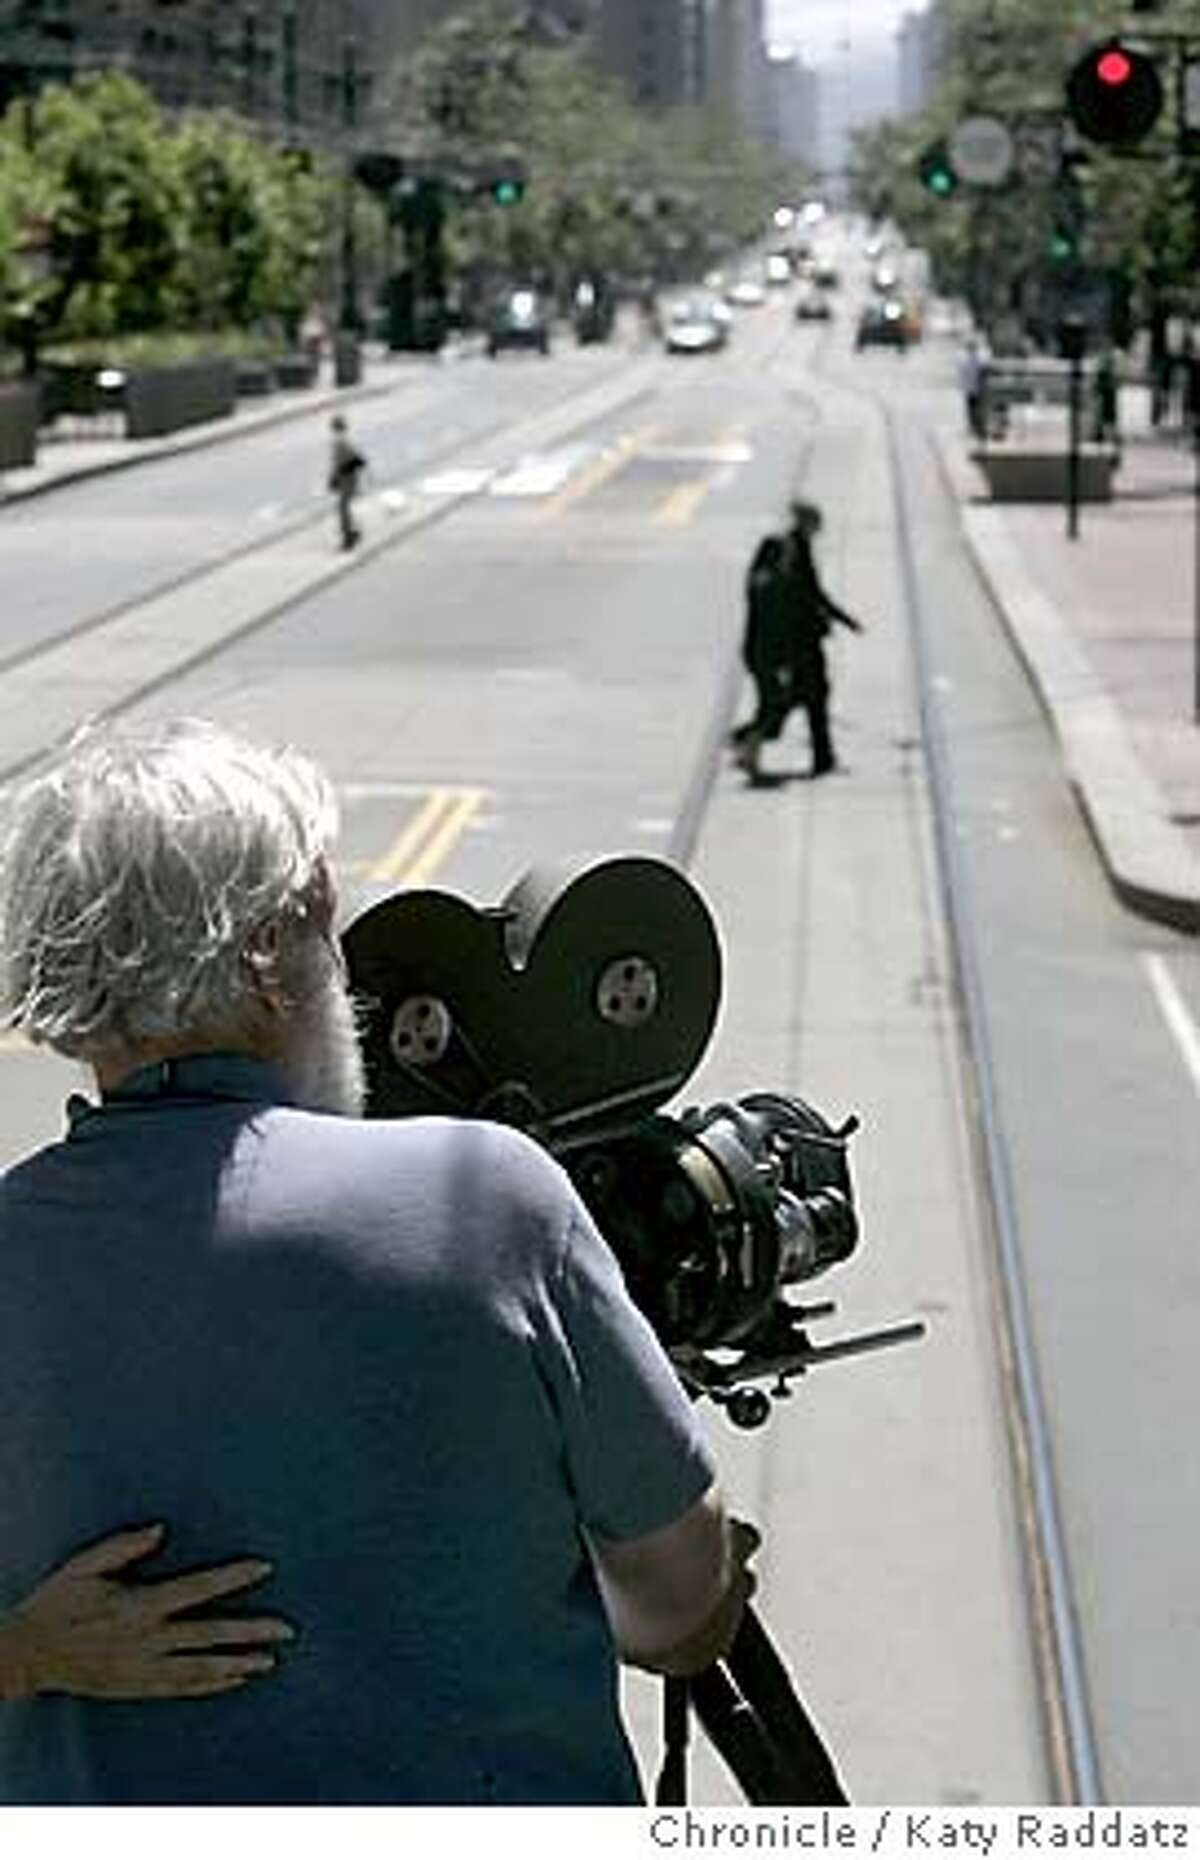 MARKETFILM03233_RAD.JPG In 1905 a San Francisco filmmaker made a film by attaching a camera to a trolley car and had it move east on Market St. On July 24, 2005 the historic footage was re-created by Melinda Stone and Sprague Anderson. Their cameras were on board a 1917 work trolley run by the Muni. SHOWN: Sprague Anderson (grey hair) is the cameraman with the Bell and Howell Standard camera Dave Ford is the reporter for Datebooki. Photo taken on 7/24/05, in San Francisco, CA. By Katy Raddatz / The San Francisco Chronicle MANDATORY CREDIT FOR PHOTOG AND SF CHRONICLE/ -MAGS OUT